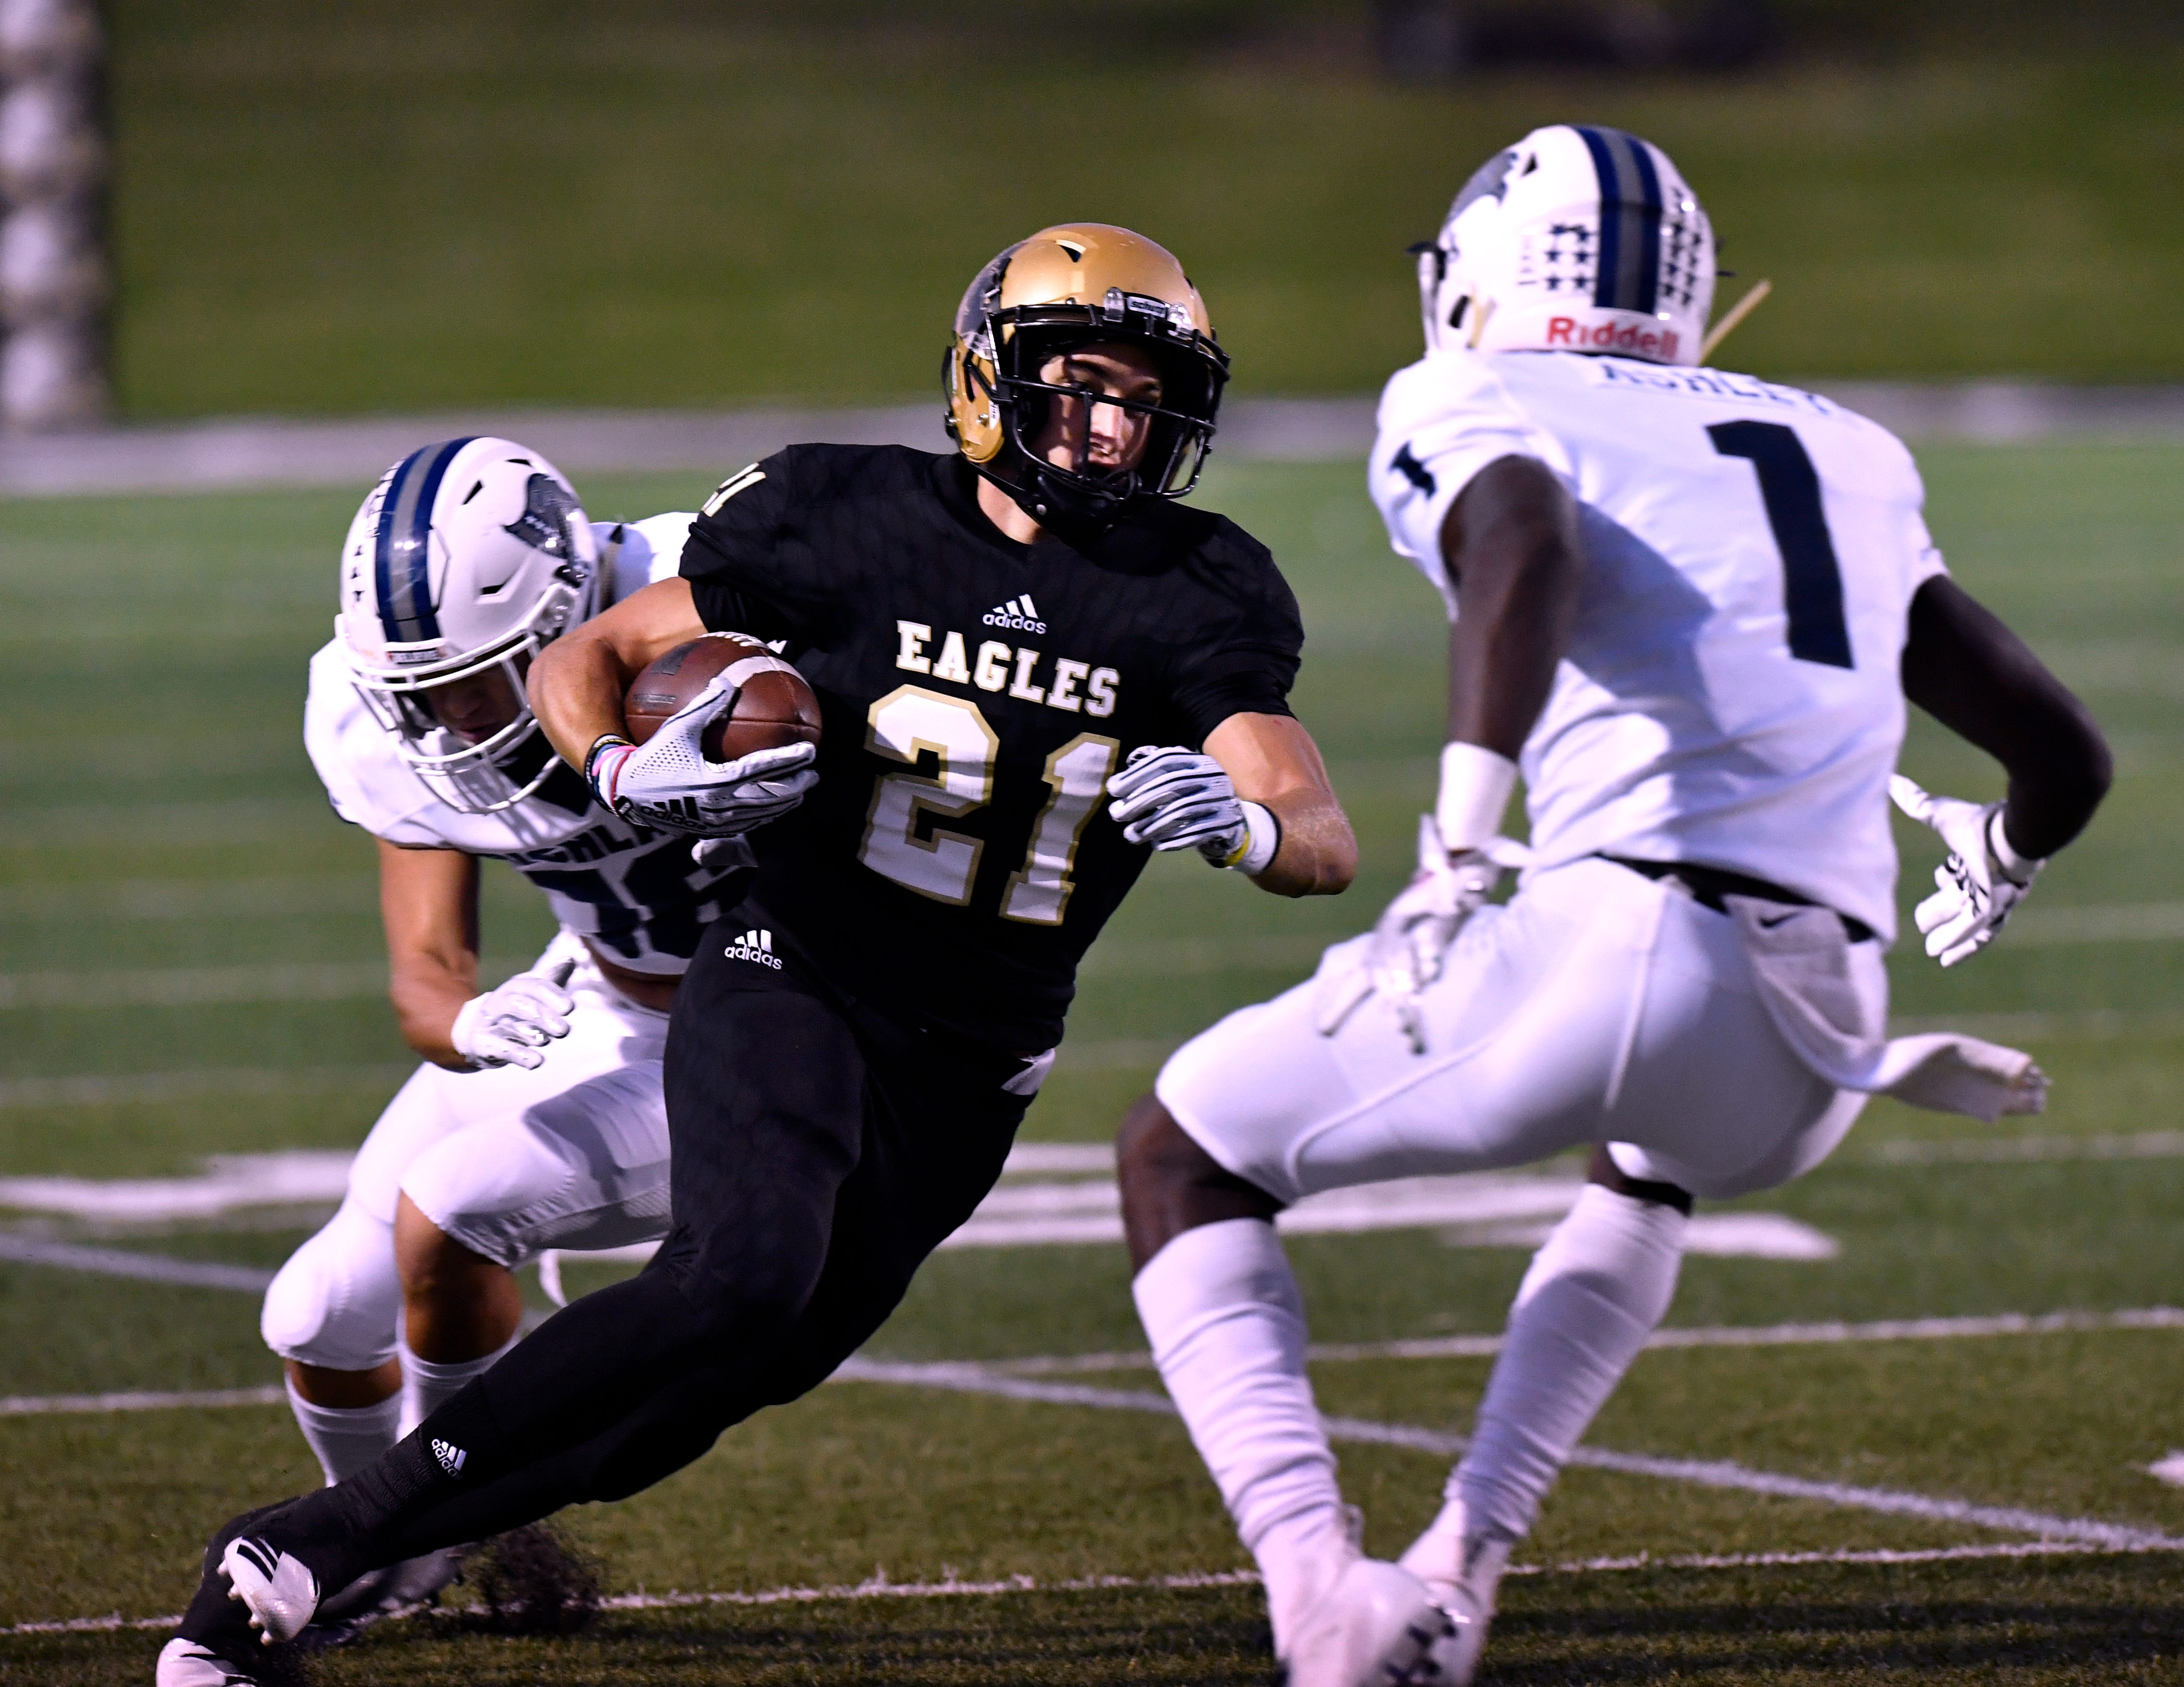 Abilene High receiver Reese Pettijohn tries to dodge Richland High's Ja'cory Ashley in the district opener at Shotwell Stadium. Pettijohn missed last week's game against L.D. Bell but his replacement, Marcos Garcia, came up big. Pettijohn is a game time decision Friday against San Angelo Central.